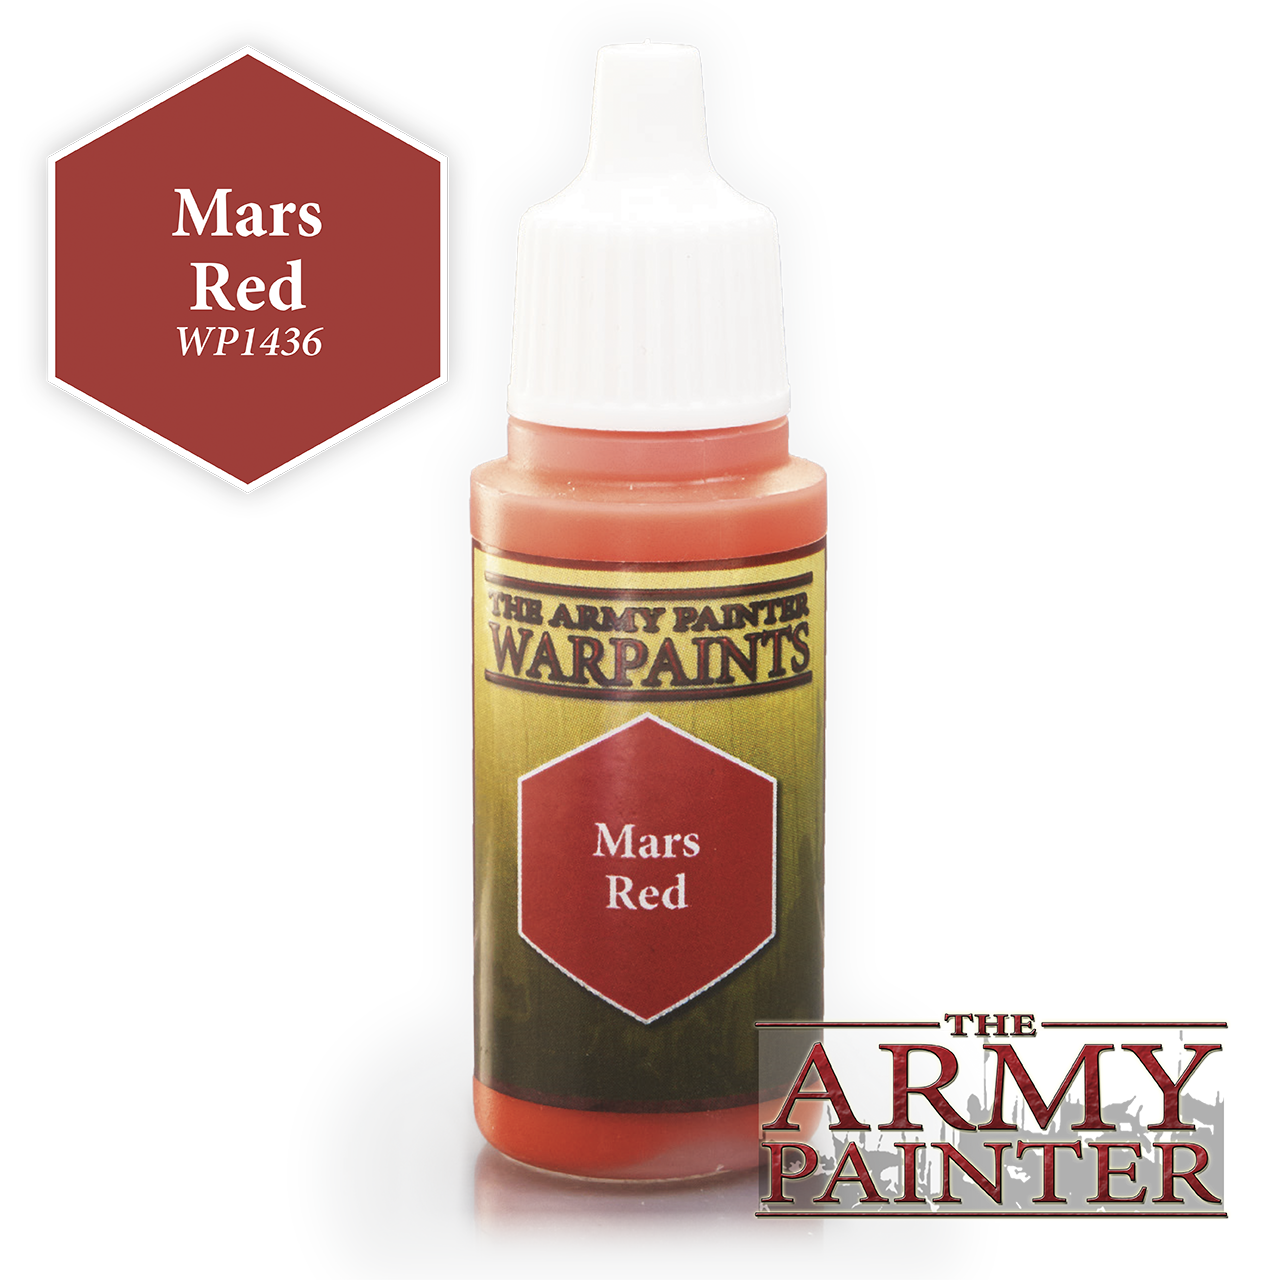 The Army Painter Warpaints: Mars Red (18ml)